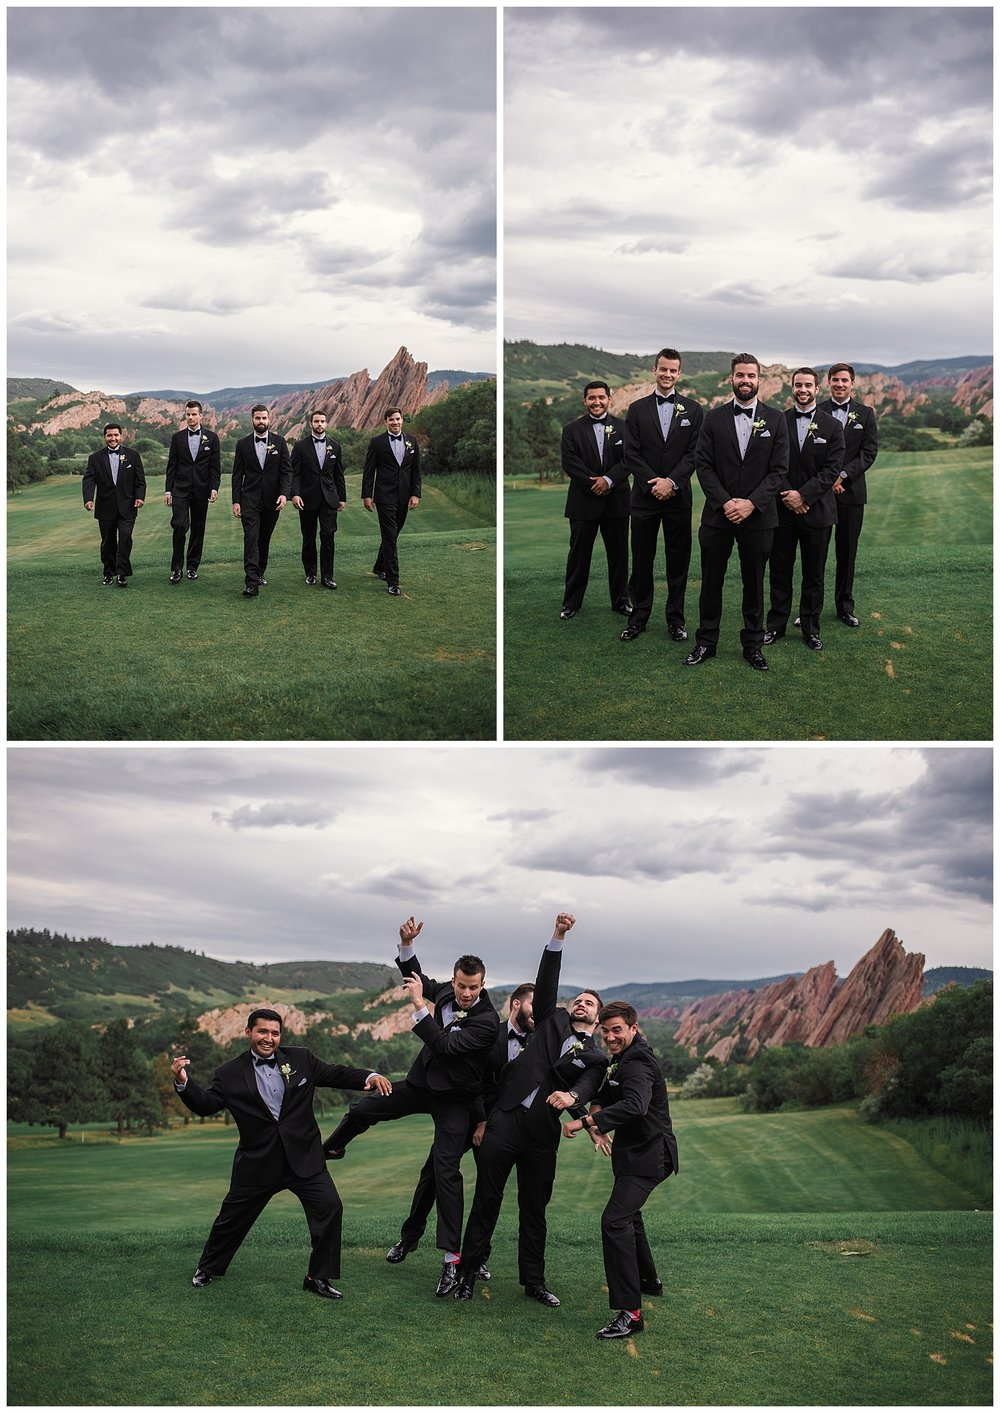 Wedding day at Arrowhead Golf Course, Colorado Wedding Inspiration, Colorado Wedding photographer, Denver wedding photographer, rocky mountain wedding photographer, intimate wedding photographer colorado, mountain wedding,